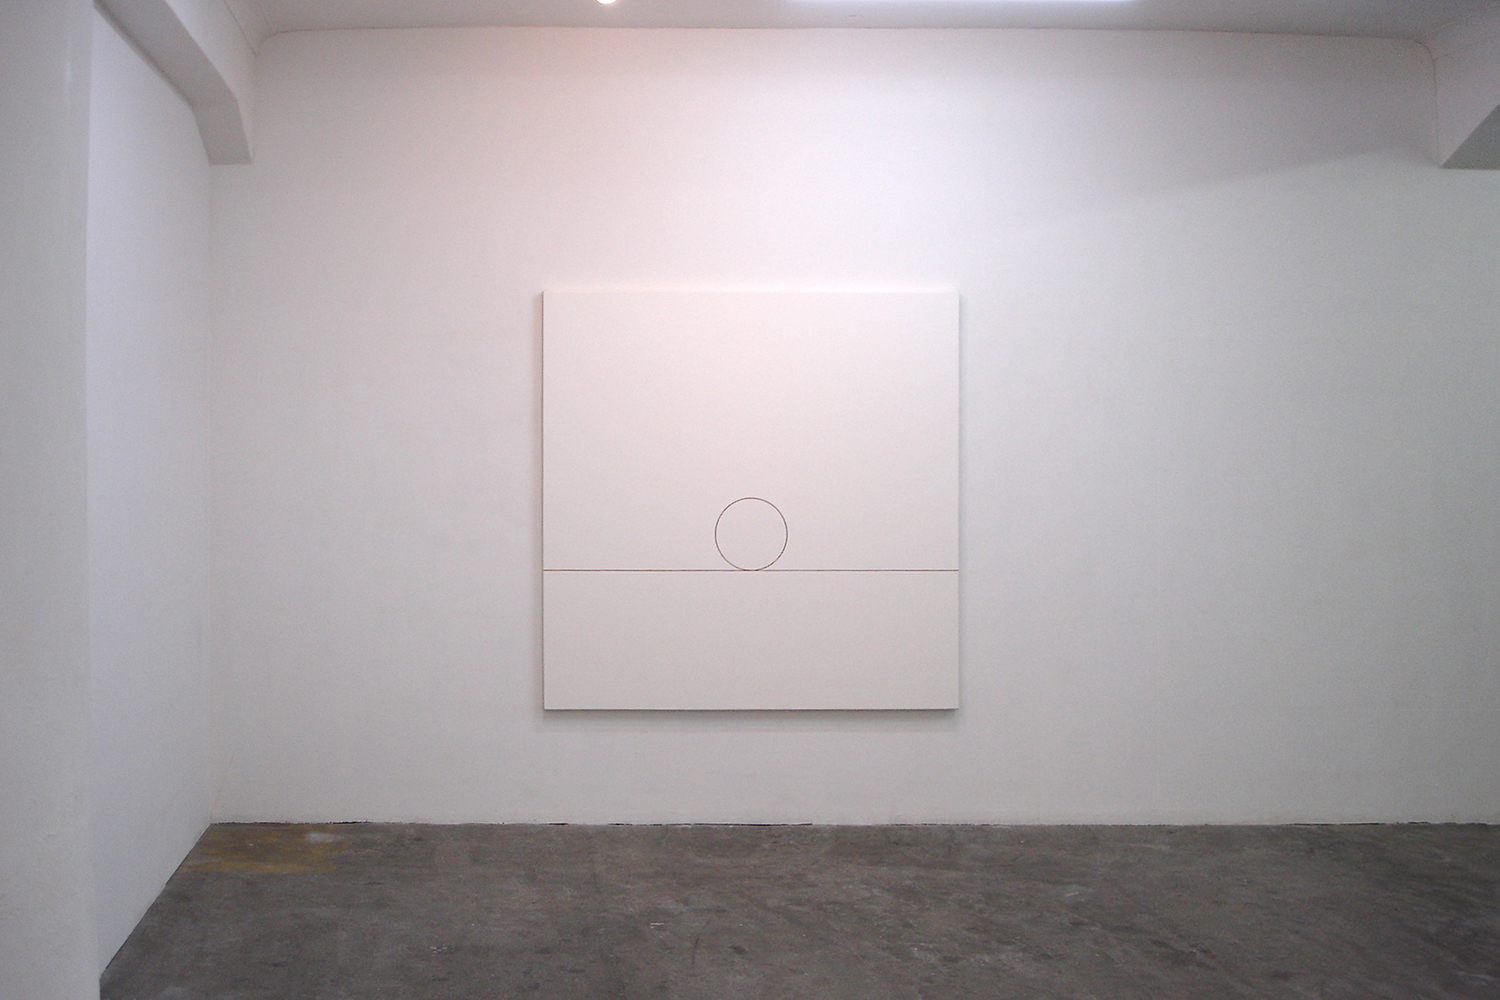 太陽|Sun 2005-08(01)|Pigments, oils, baked linseed oil on canvas| 160 x 160 cm|2005